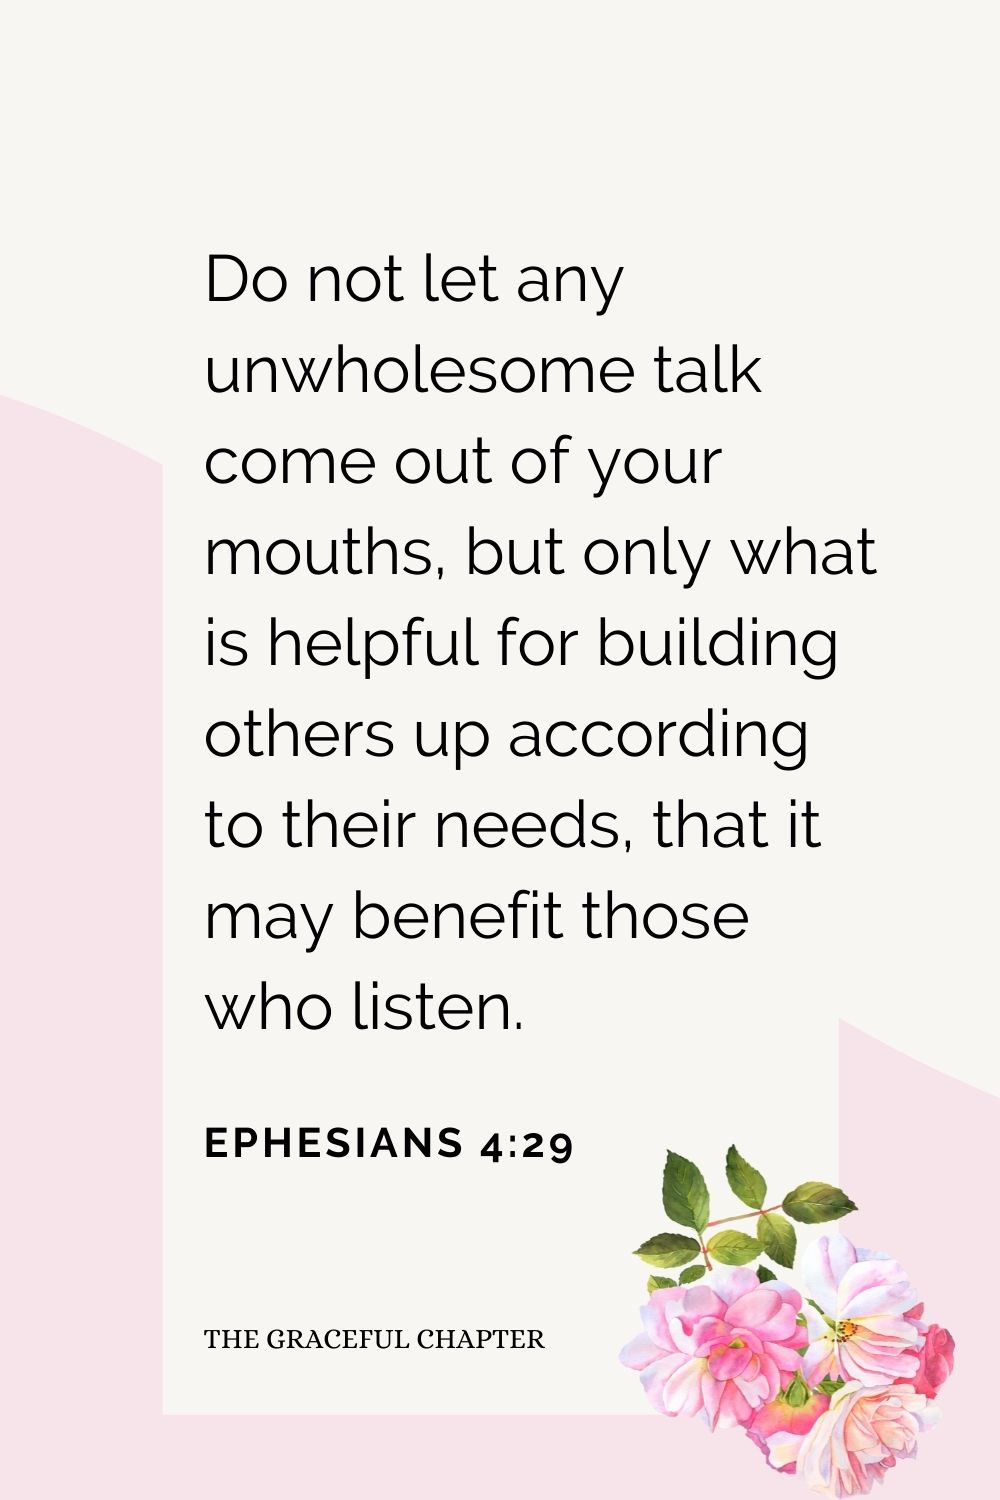 Do not let any unwholesome talk come out of your mouths, but only what is helpful for building others up according to their needs, that it may benefit those who listen. Ephesians 4:29